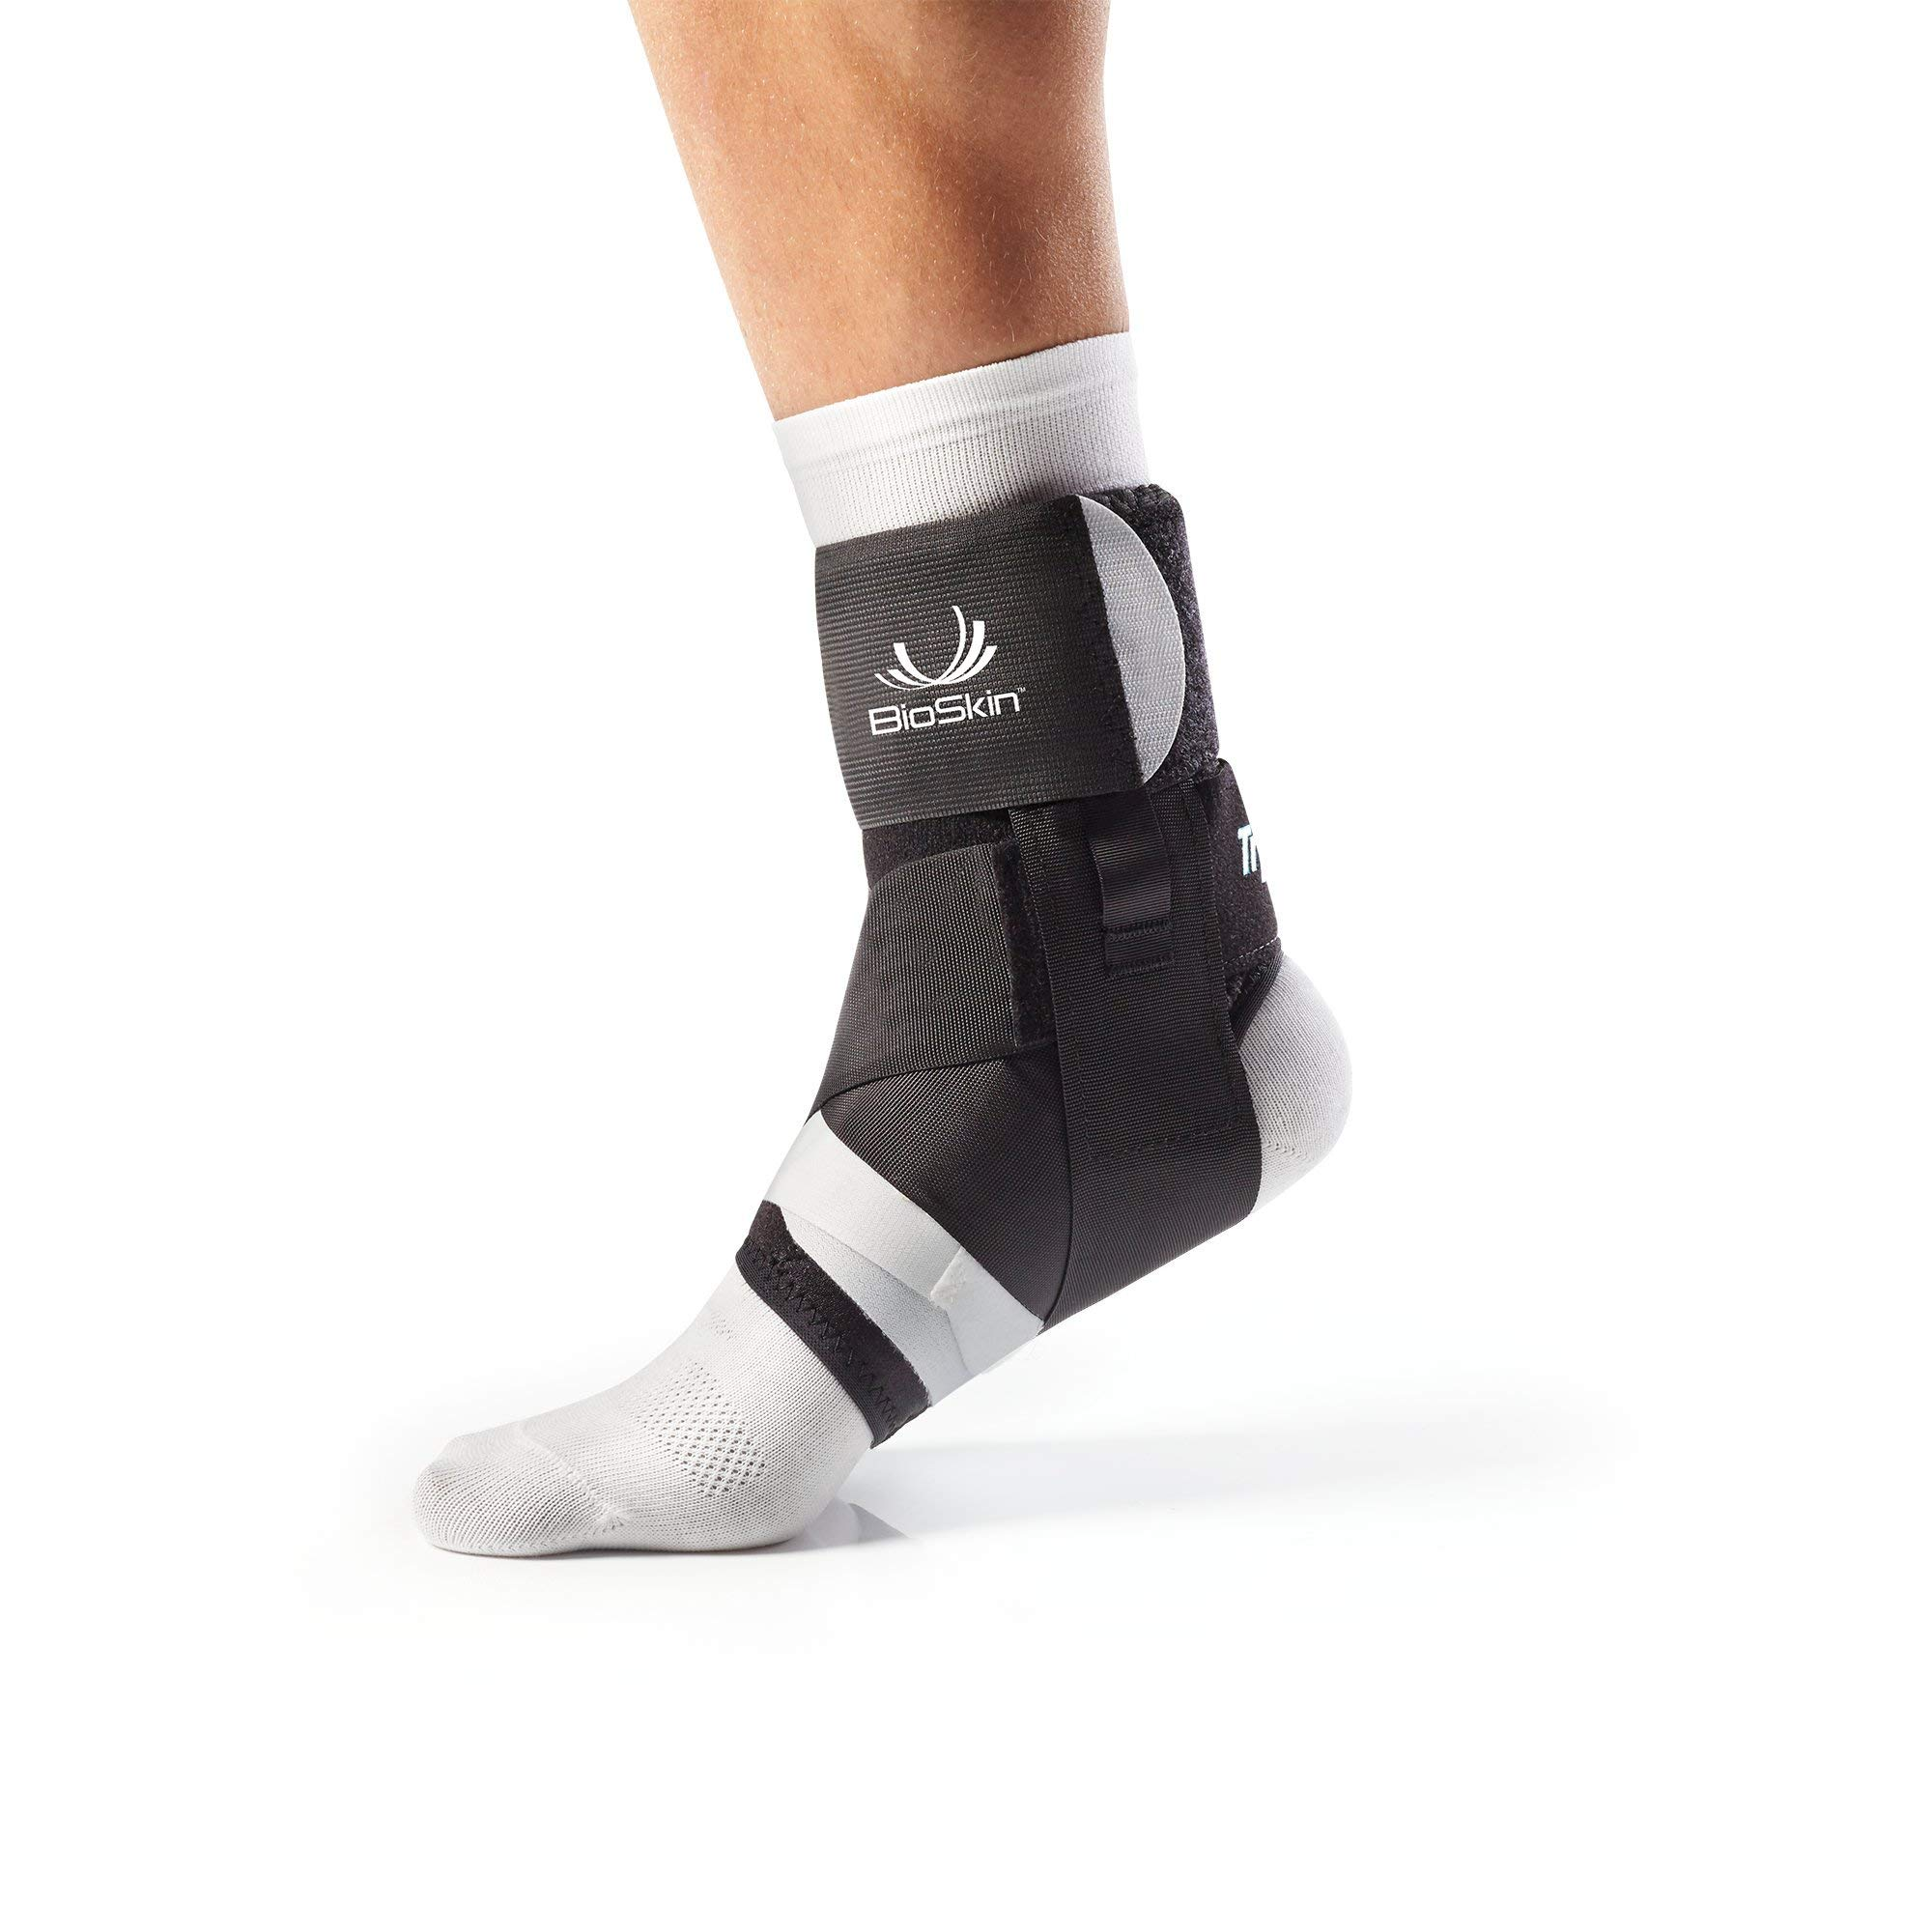 BioSkin Trilok Ankle Brace - Foot and Ankle Support for Ankle Sprains, Plantar Fasciitis, PTTD, Tendonitis and Active Ankle Stability - Lightweight, Hypo-Allergenic (Large)